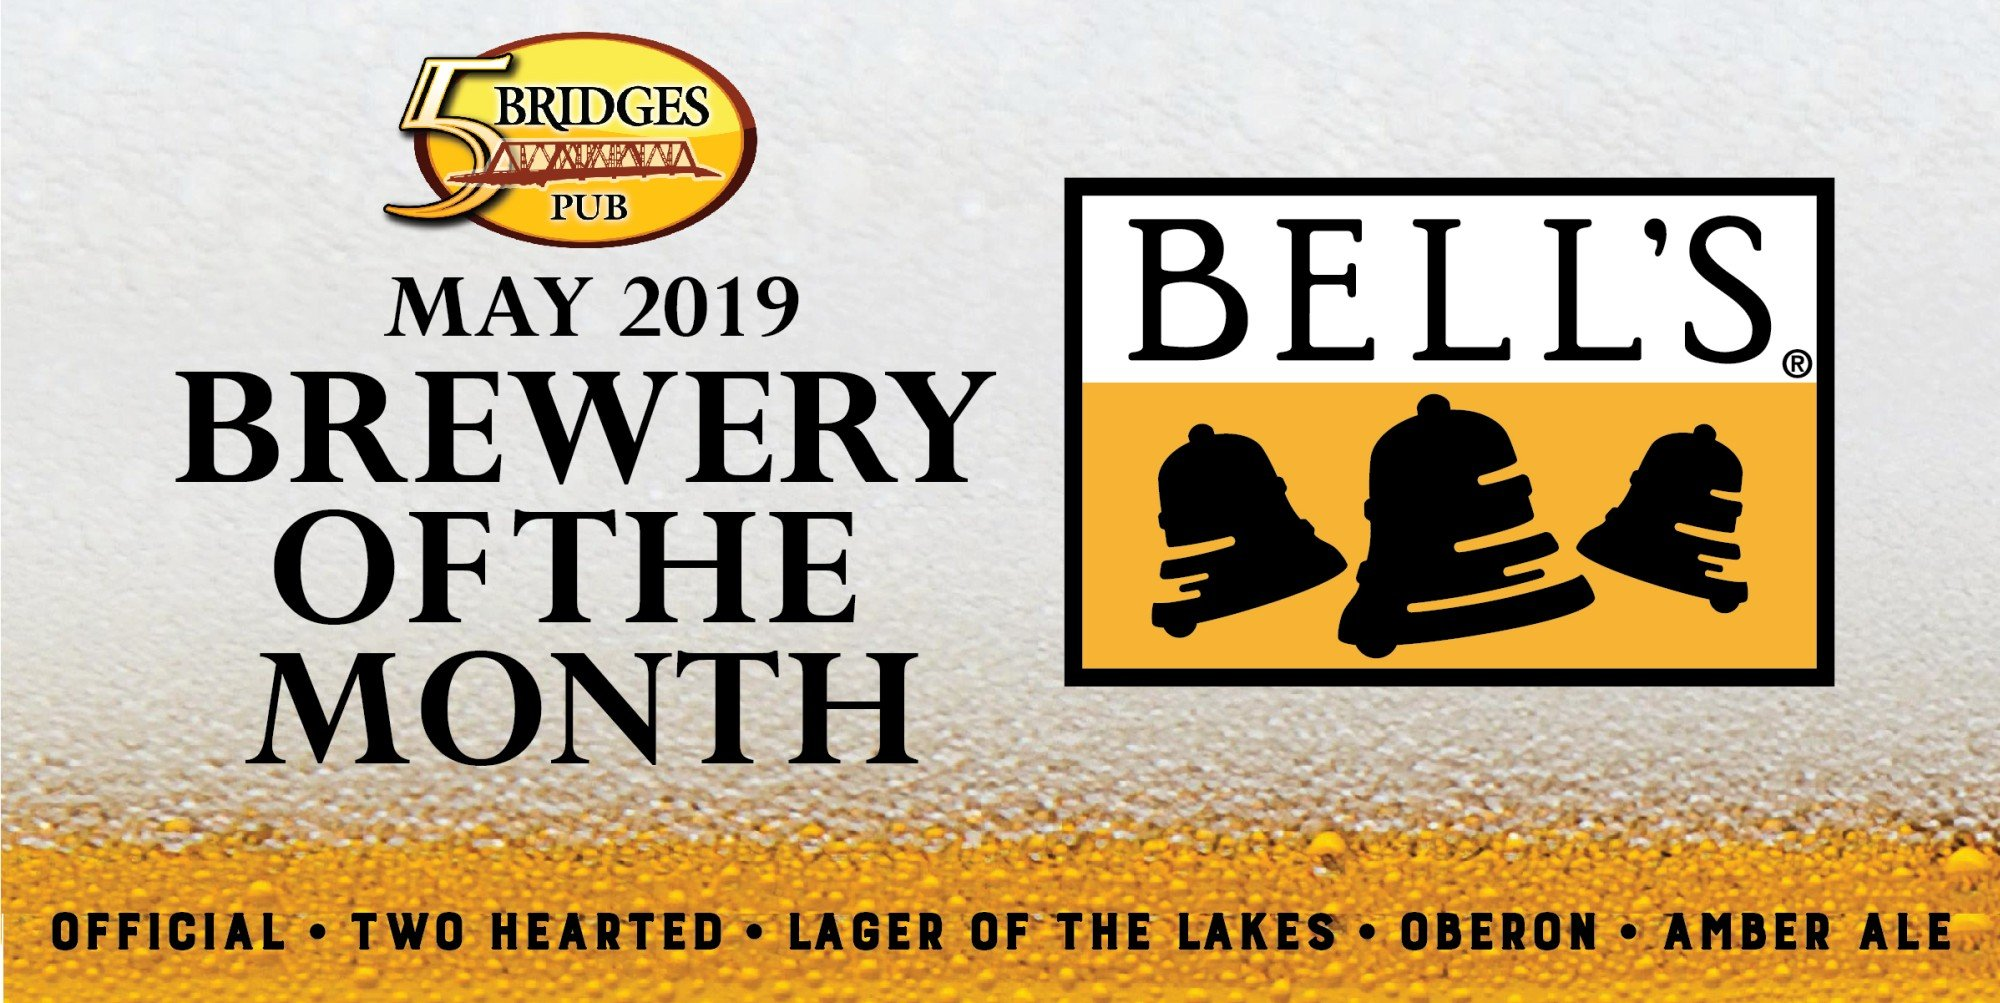 May 2019 Brewery of the Month – Bells